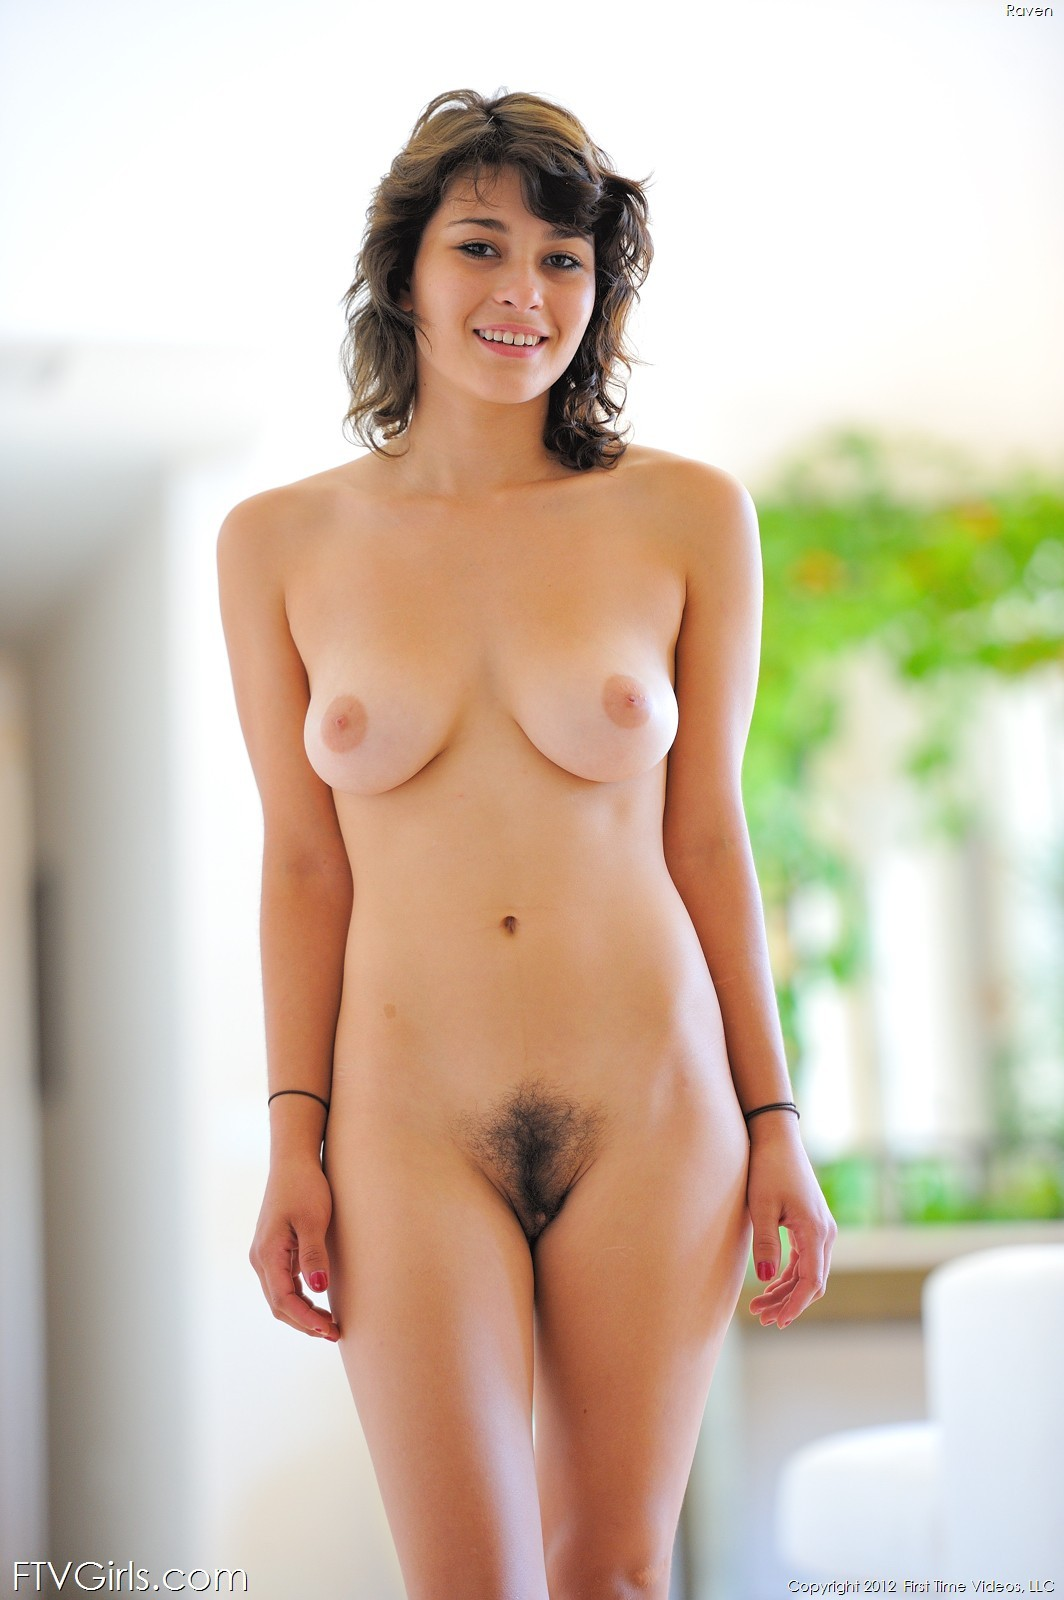 full frontal naked woman